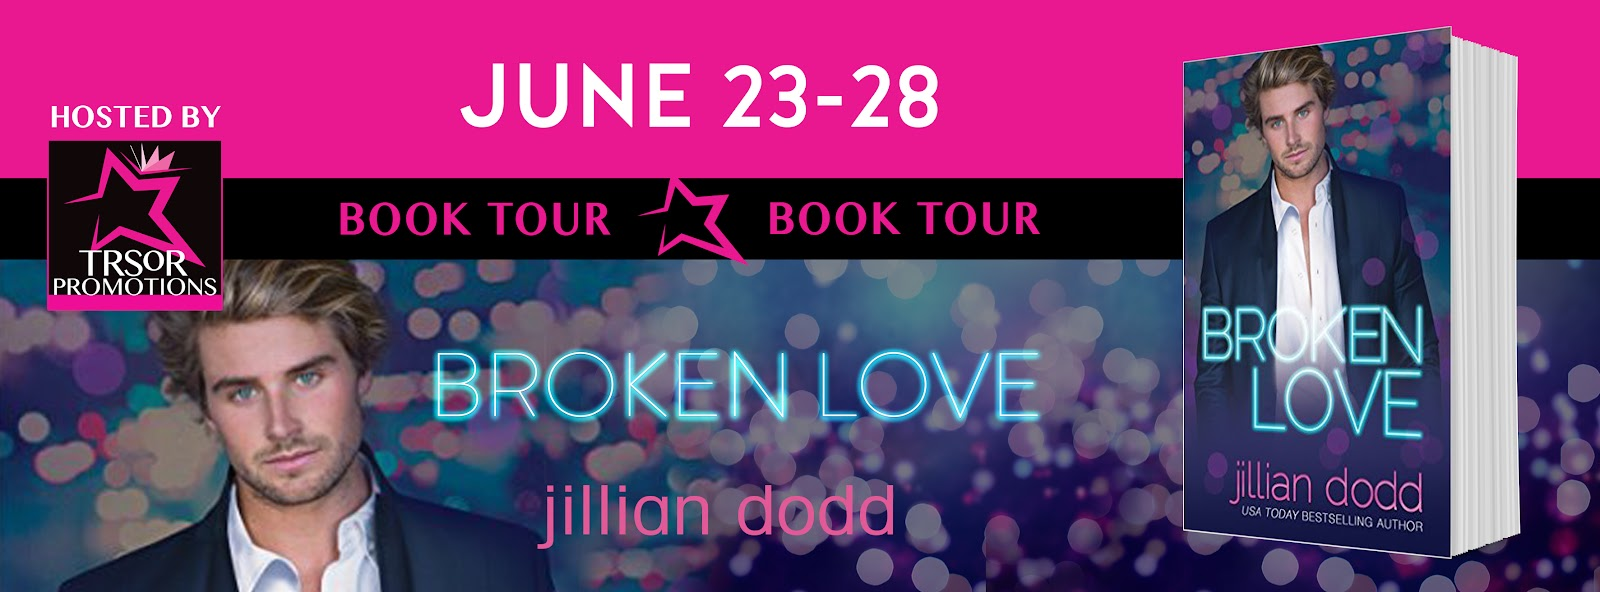 Book Tour: Broken Love by Jillian Dodd